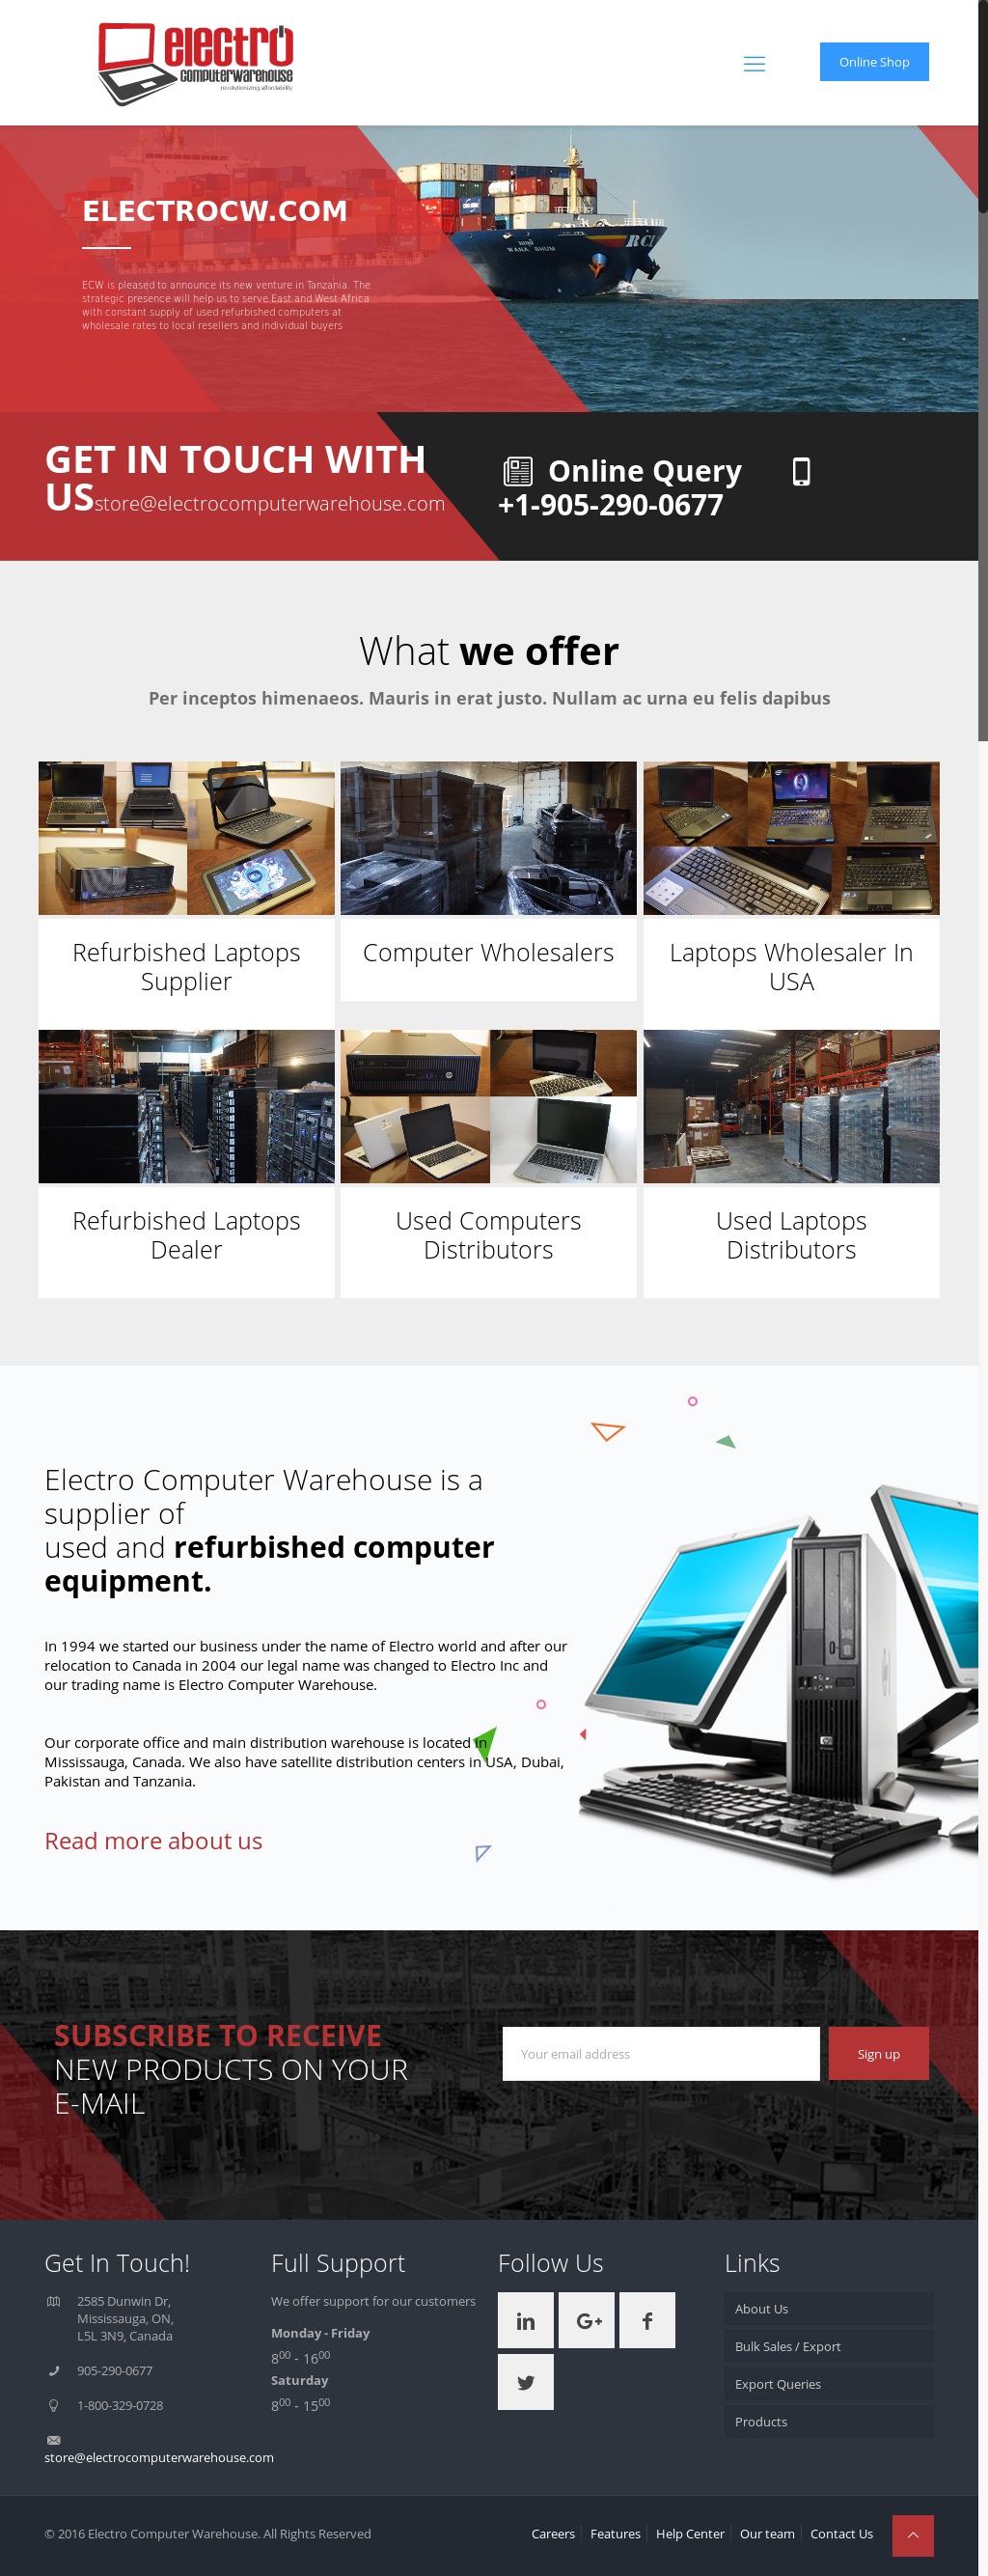 Electro Computer Warehouse Competitors, Revenue and Employees